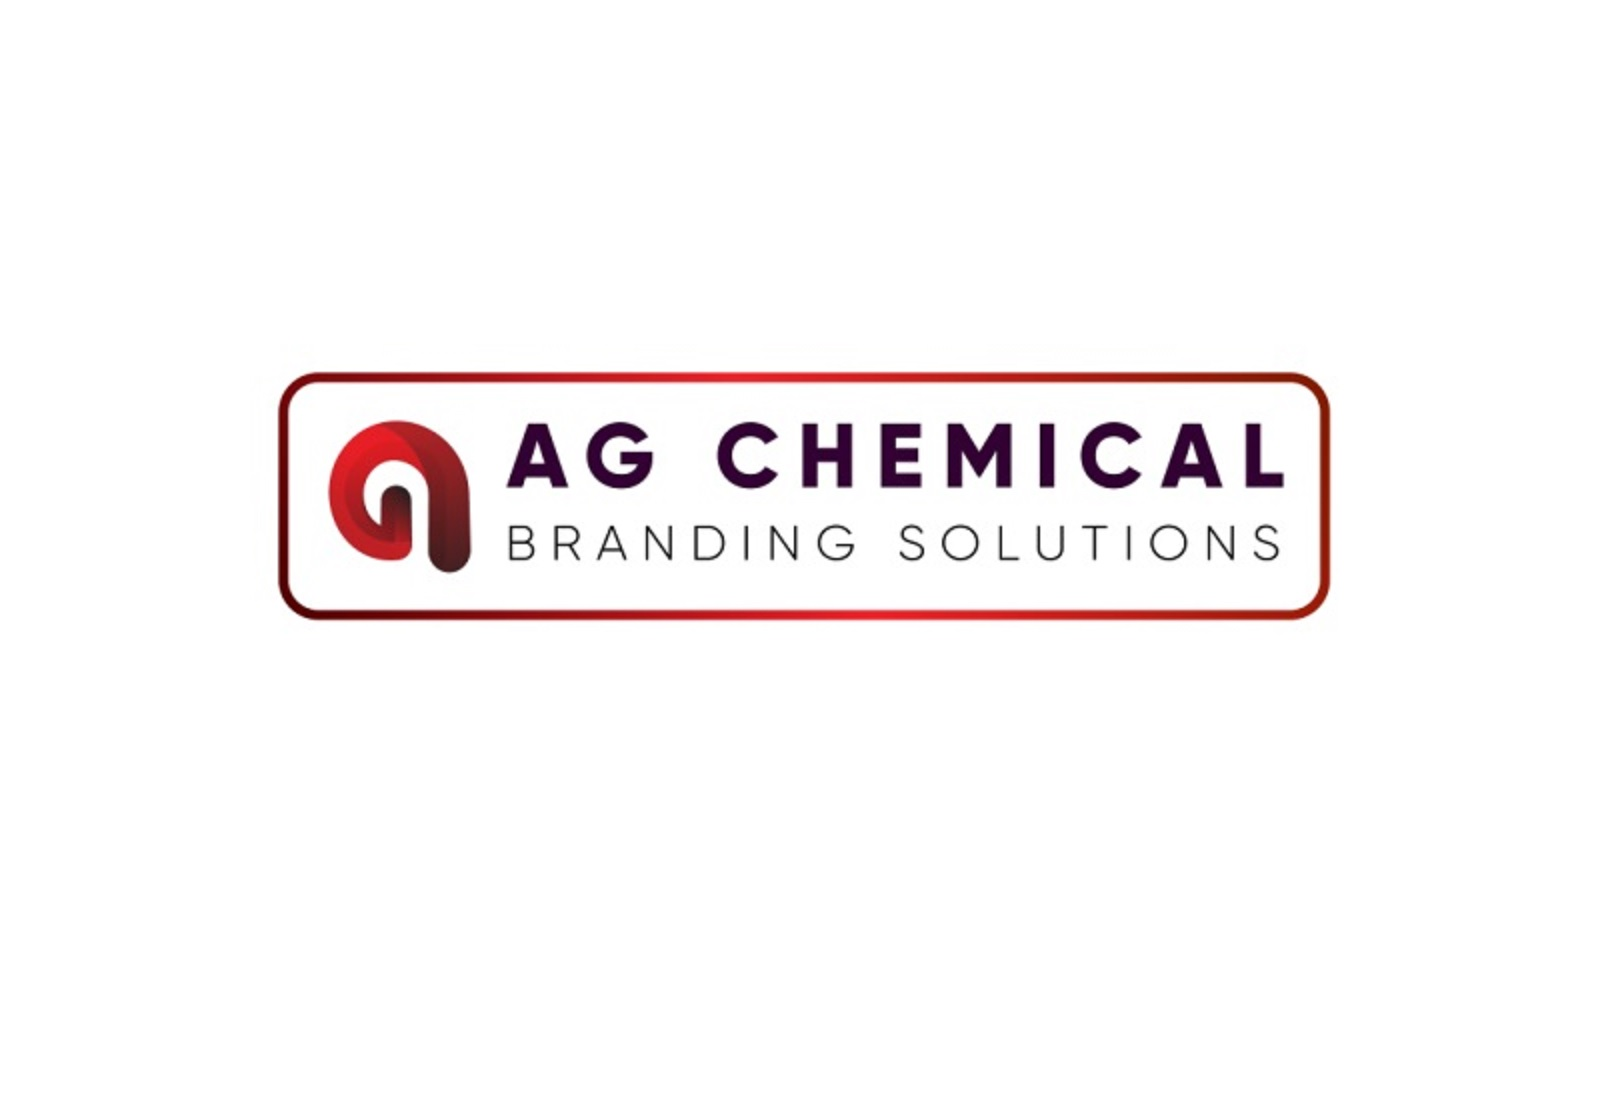 AG Chemical Branding Solutions LTD